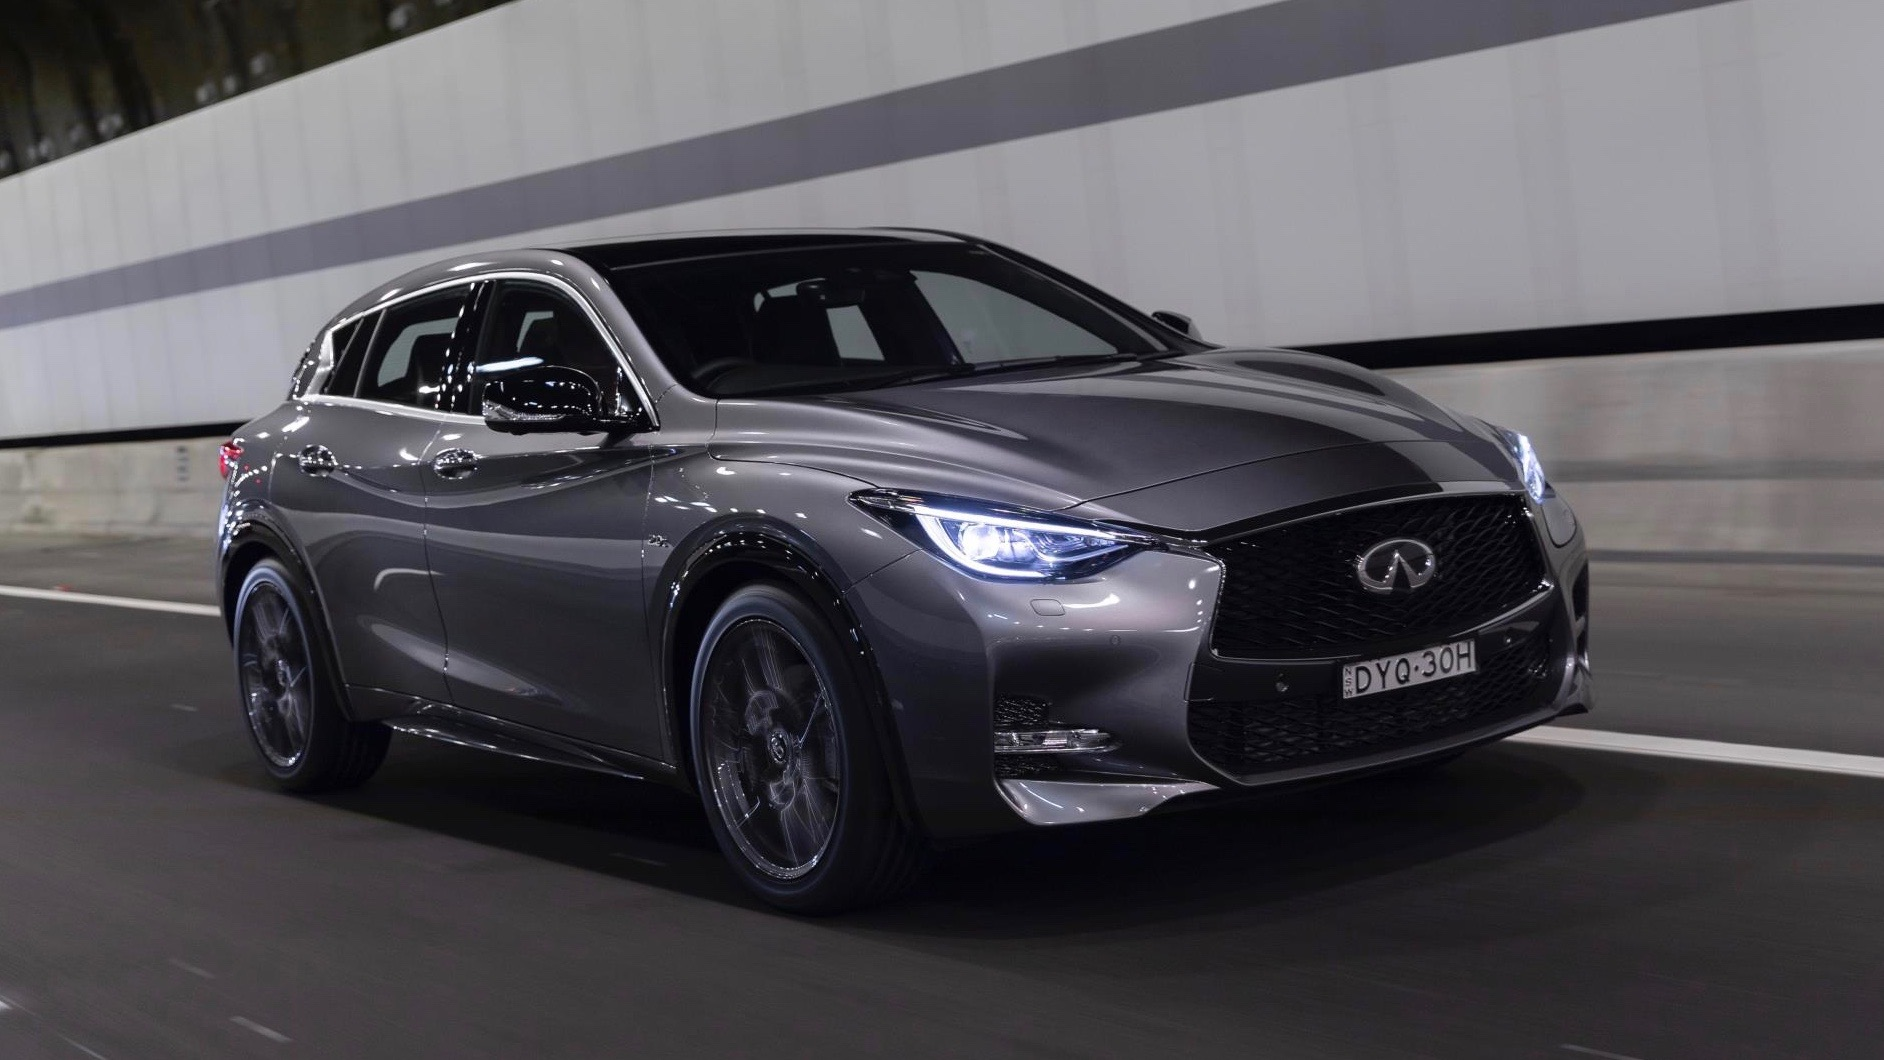 60 New 2019 Infiniti Q30 Price and Review